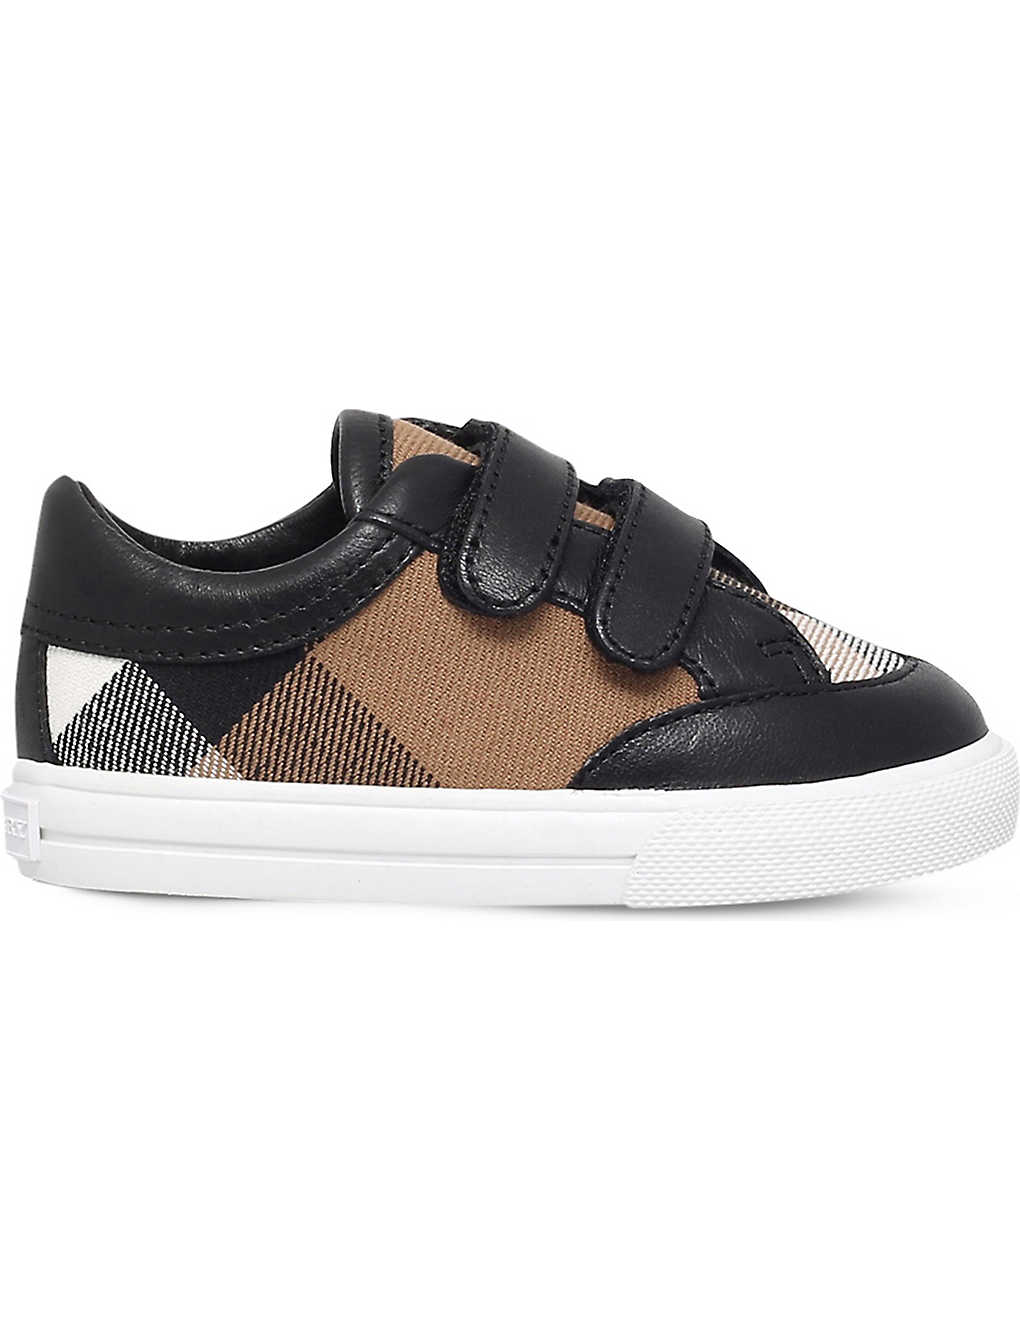 fa055580a878 BURBERRY - Heacham check-print canvas and leather trainers 8-11 ...